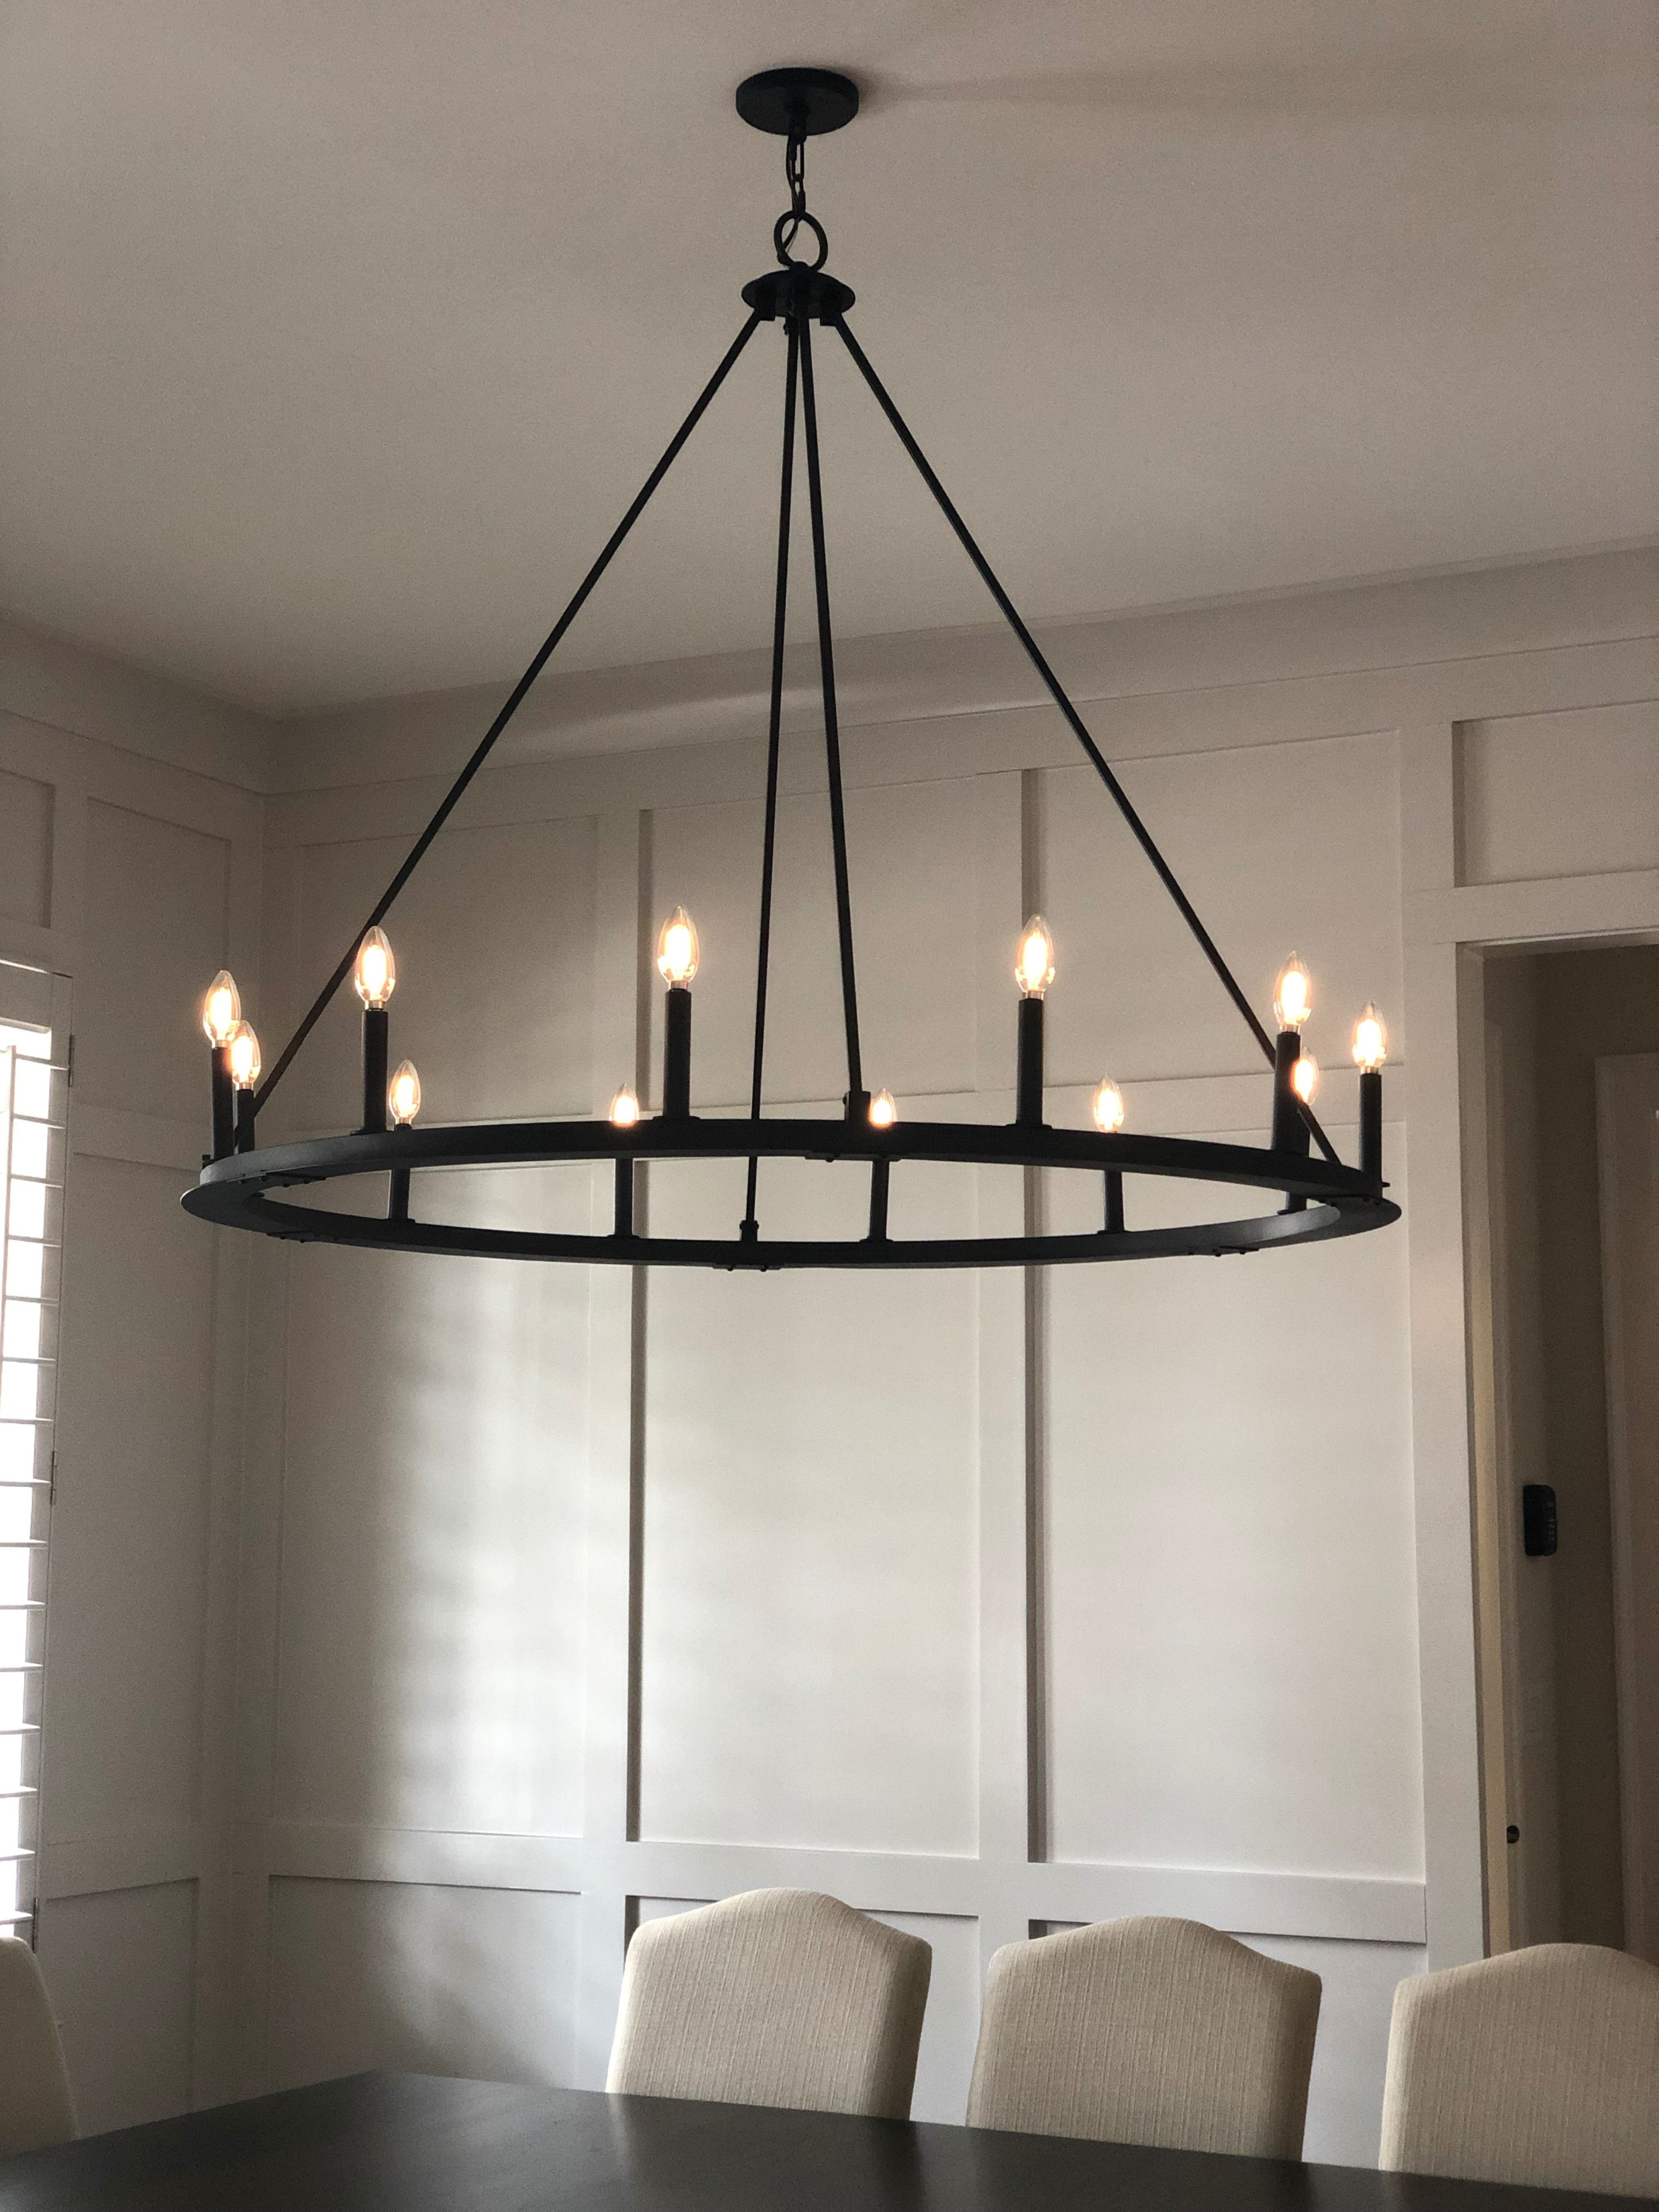 This Dining Room Light Fixture Hangs Over A Massive 12 Person